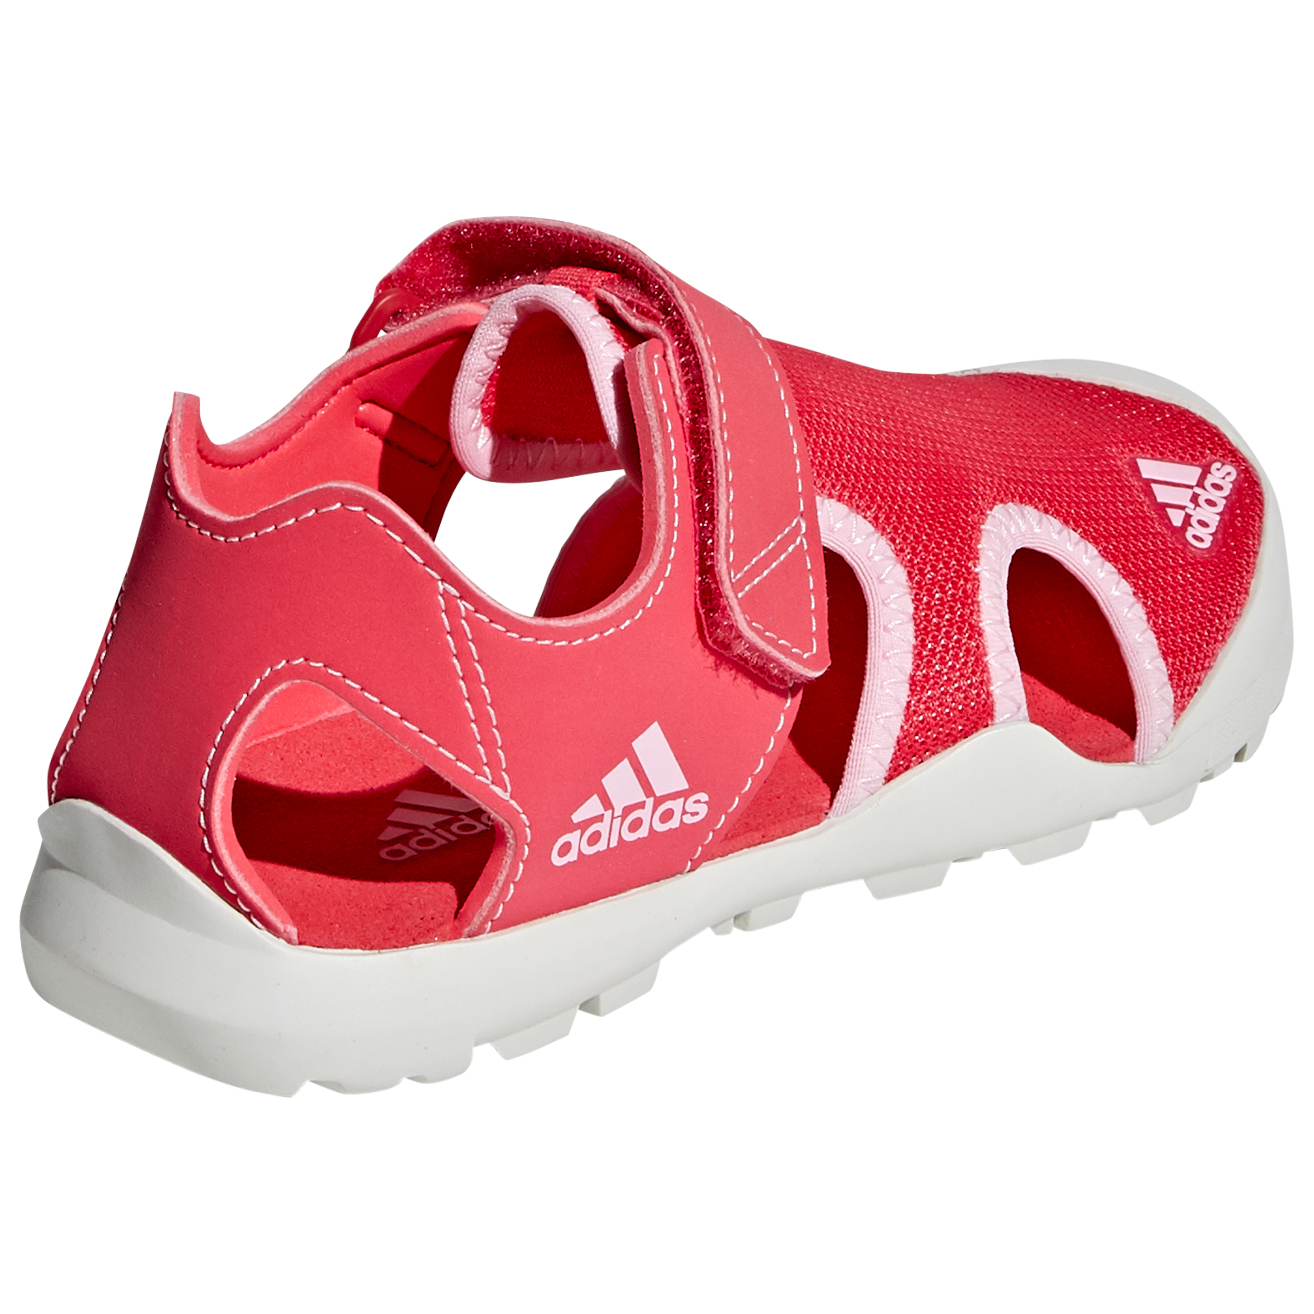 san francisco 44b46 185a3 adidas - Kid's Captain Toey - Sandalen - Active Pink / True Pink / Raw  White | 31 (EU)